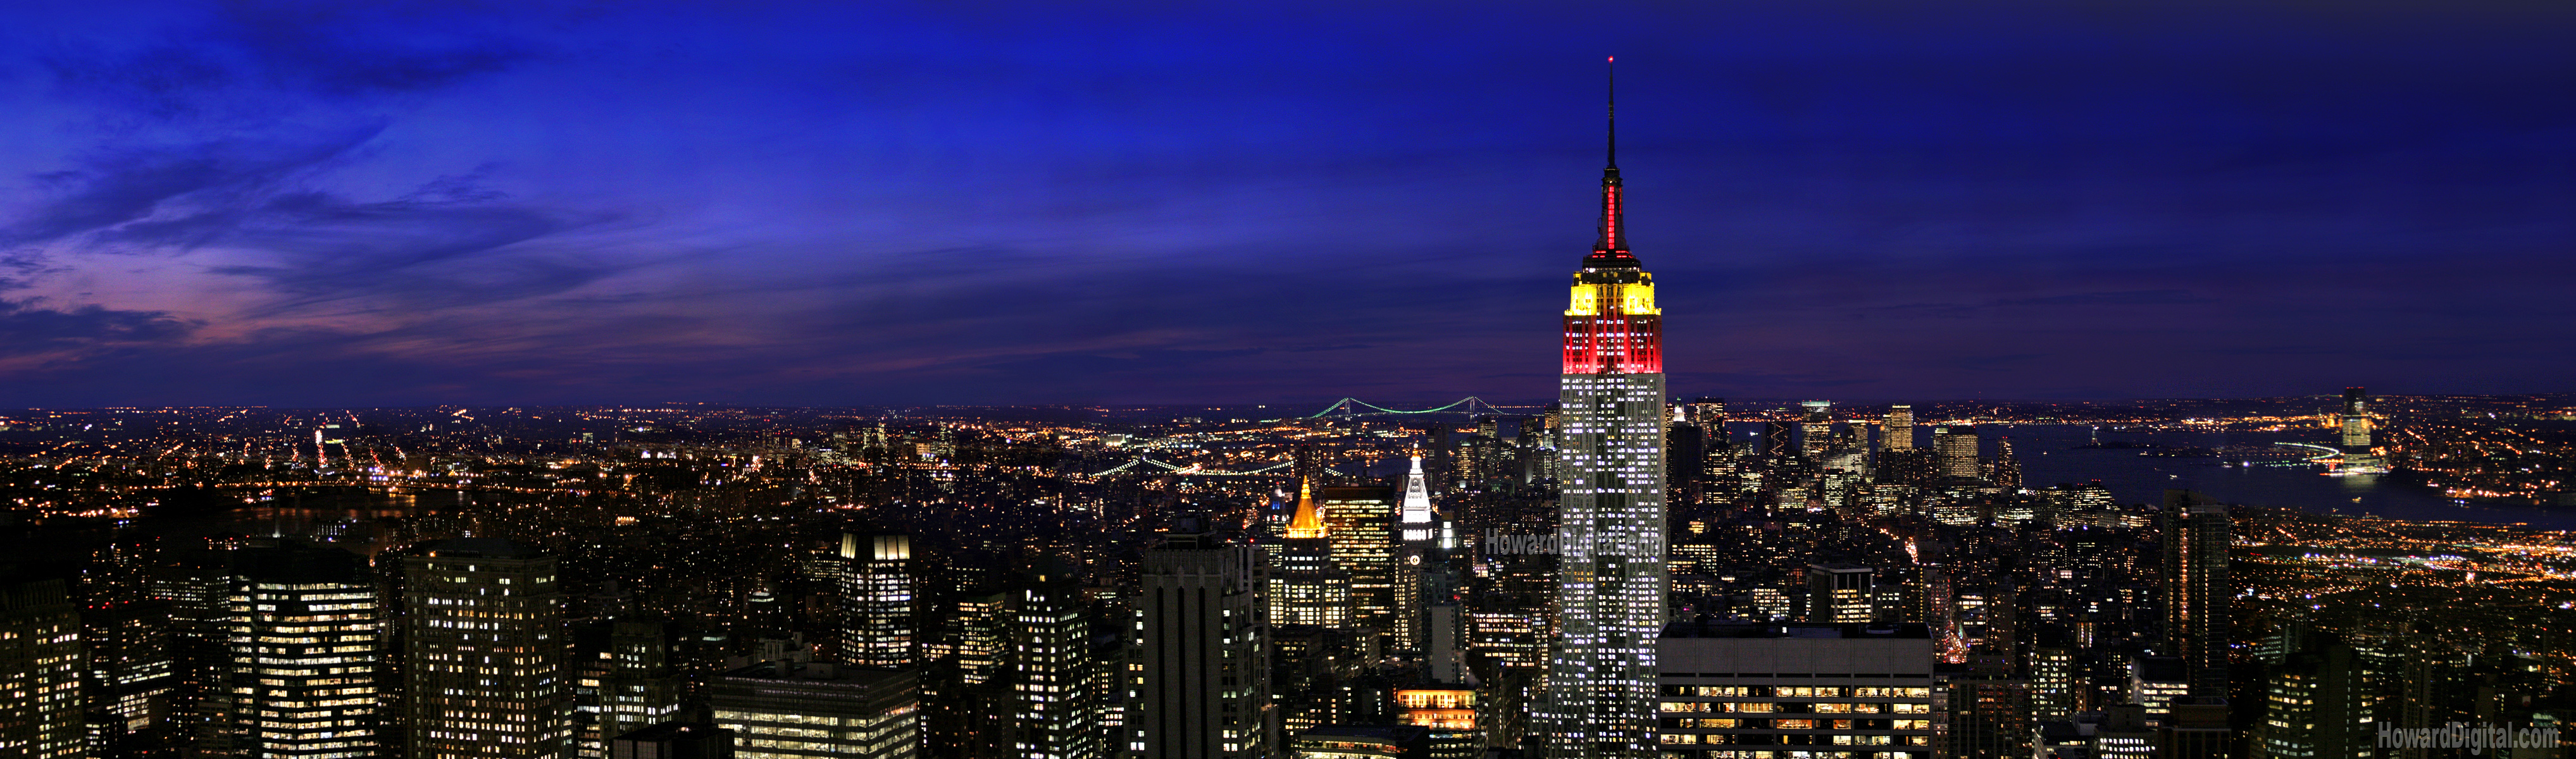 empire state building address new york panorama empire. Black Bedroom Furniture Sets. Home Design Ideas